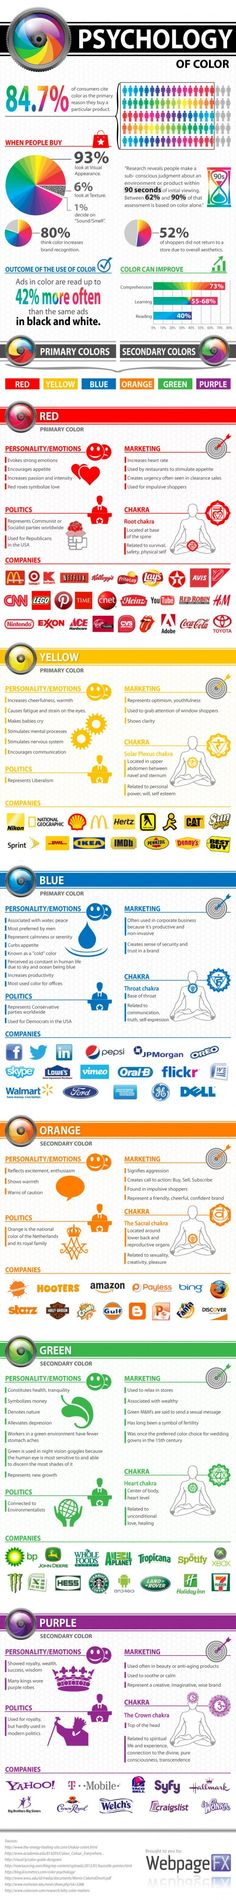 The Secret Psychology of Color in Marketing: Infographic Curious about the psychology of color? Wondering how color influences marketing and sales? Learn to use color better from this infographic! Graphisches Design, Logo Design, Graphic Design, Design Color, Interior Design, Design Agency, Interior Colors, Color Art, Creative Design